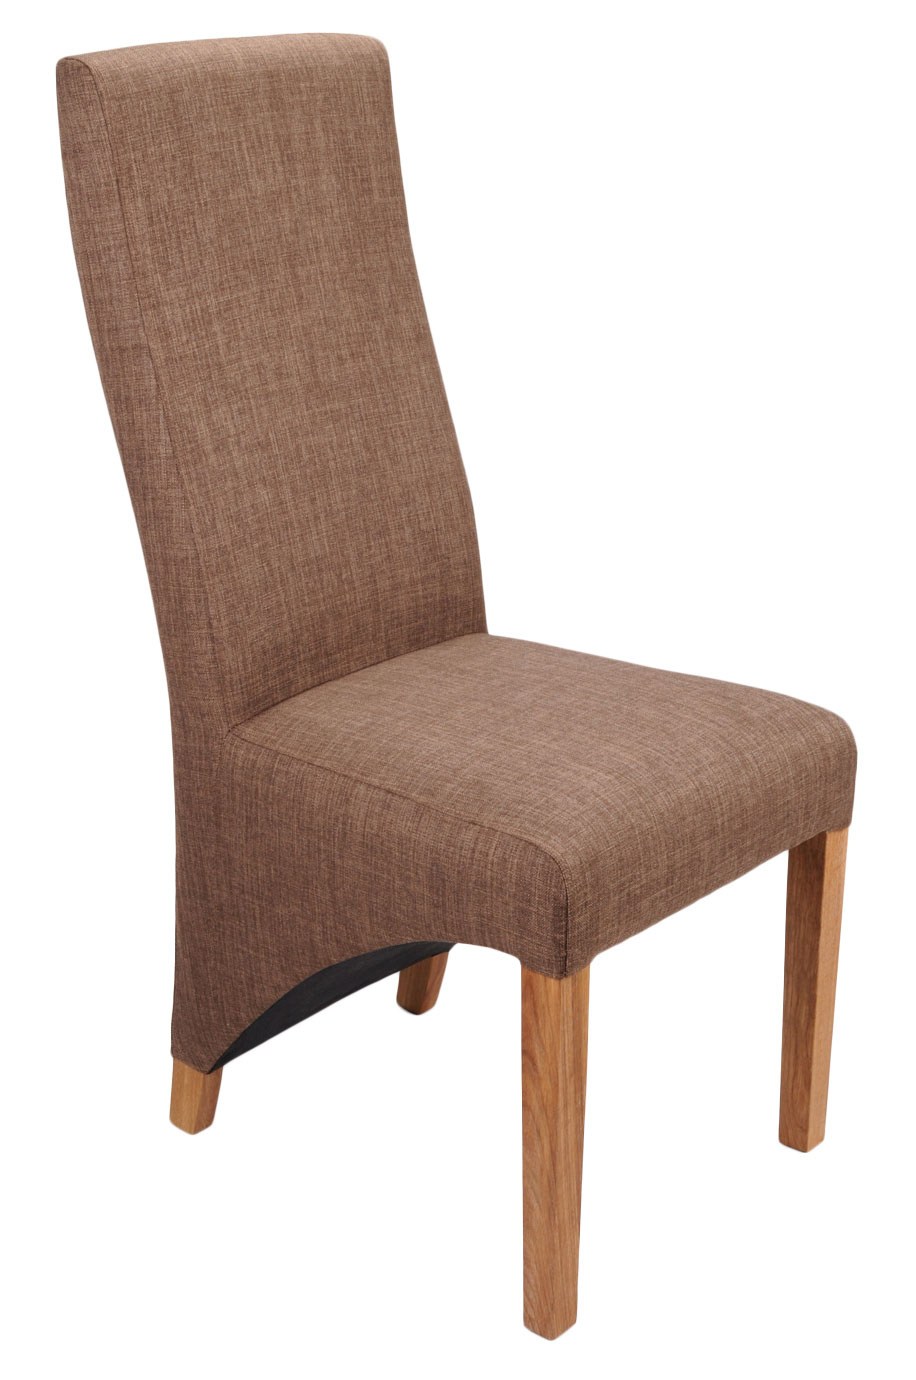 Abella Cinnamon Fabric Dining Chairs (Pair)